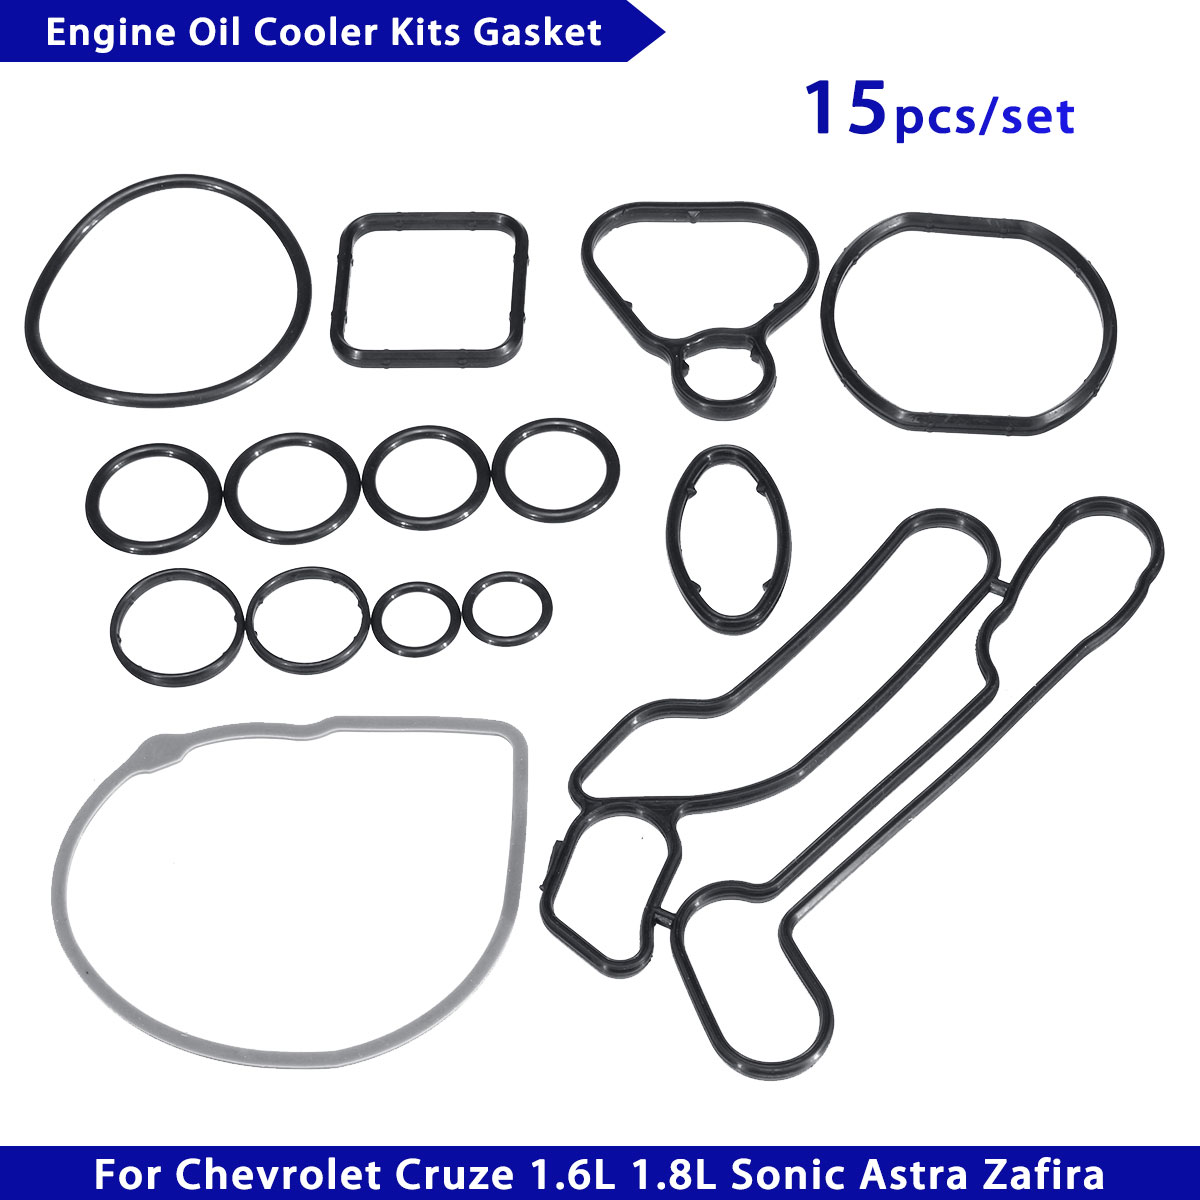 15Pcs/Set Engine Oil Cooler Cooling System Filter Gasket Seal <font><b>24445723</b></font> 55354071 For Chevrolet Cruze 1.6L 1.8L Sonic Astra Zafira image